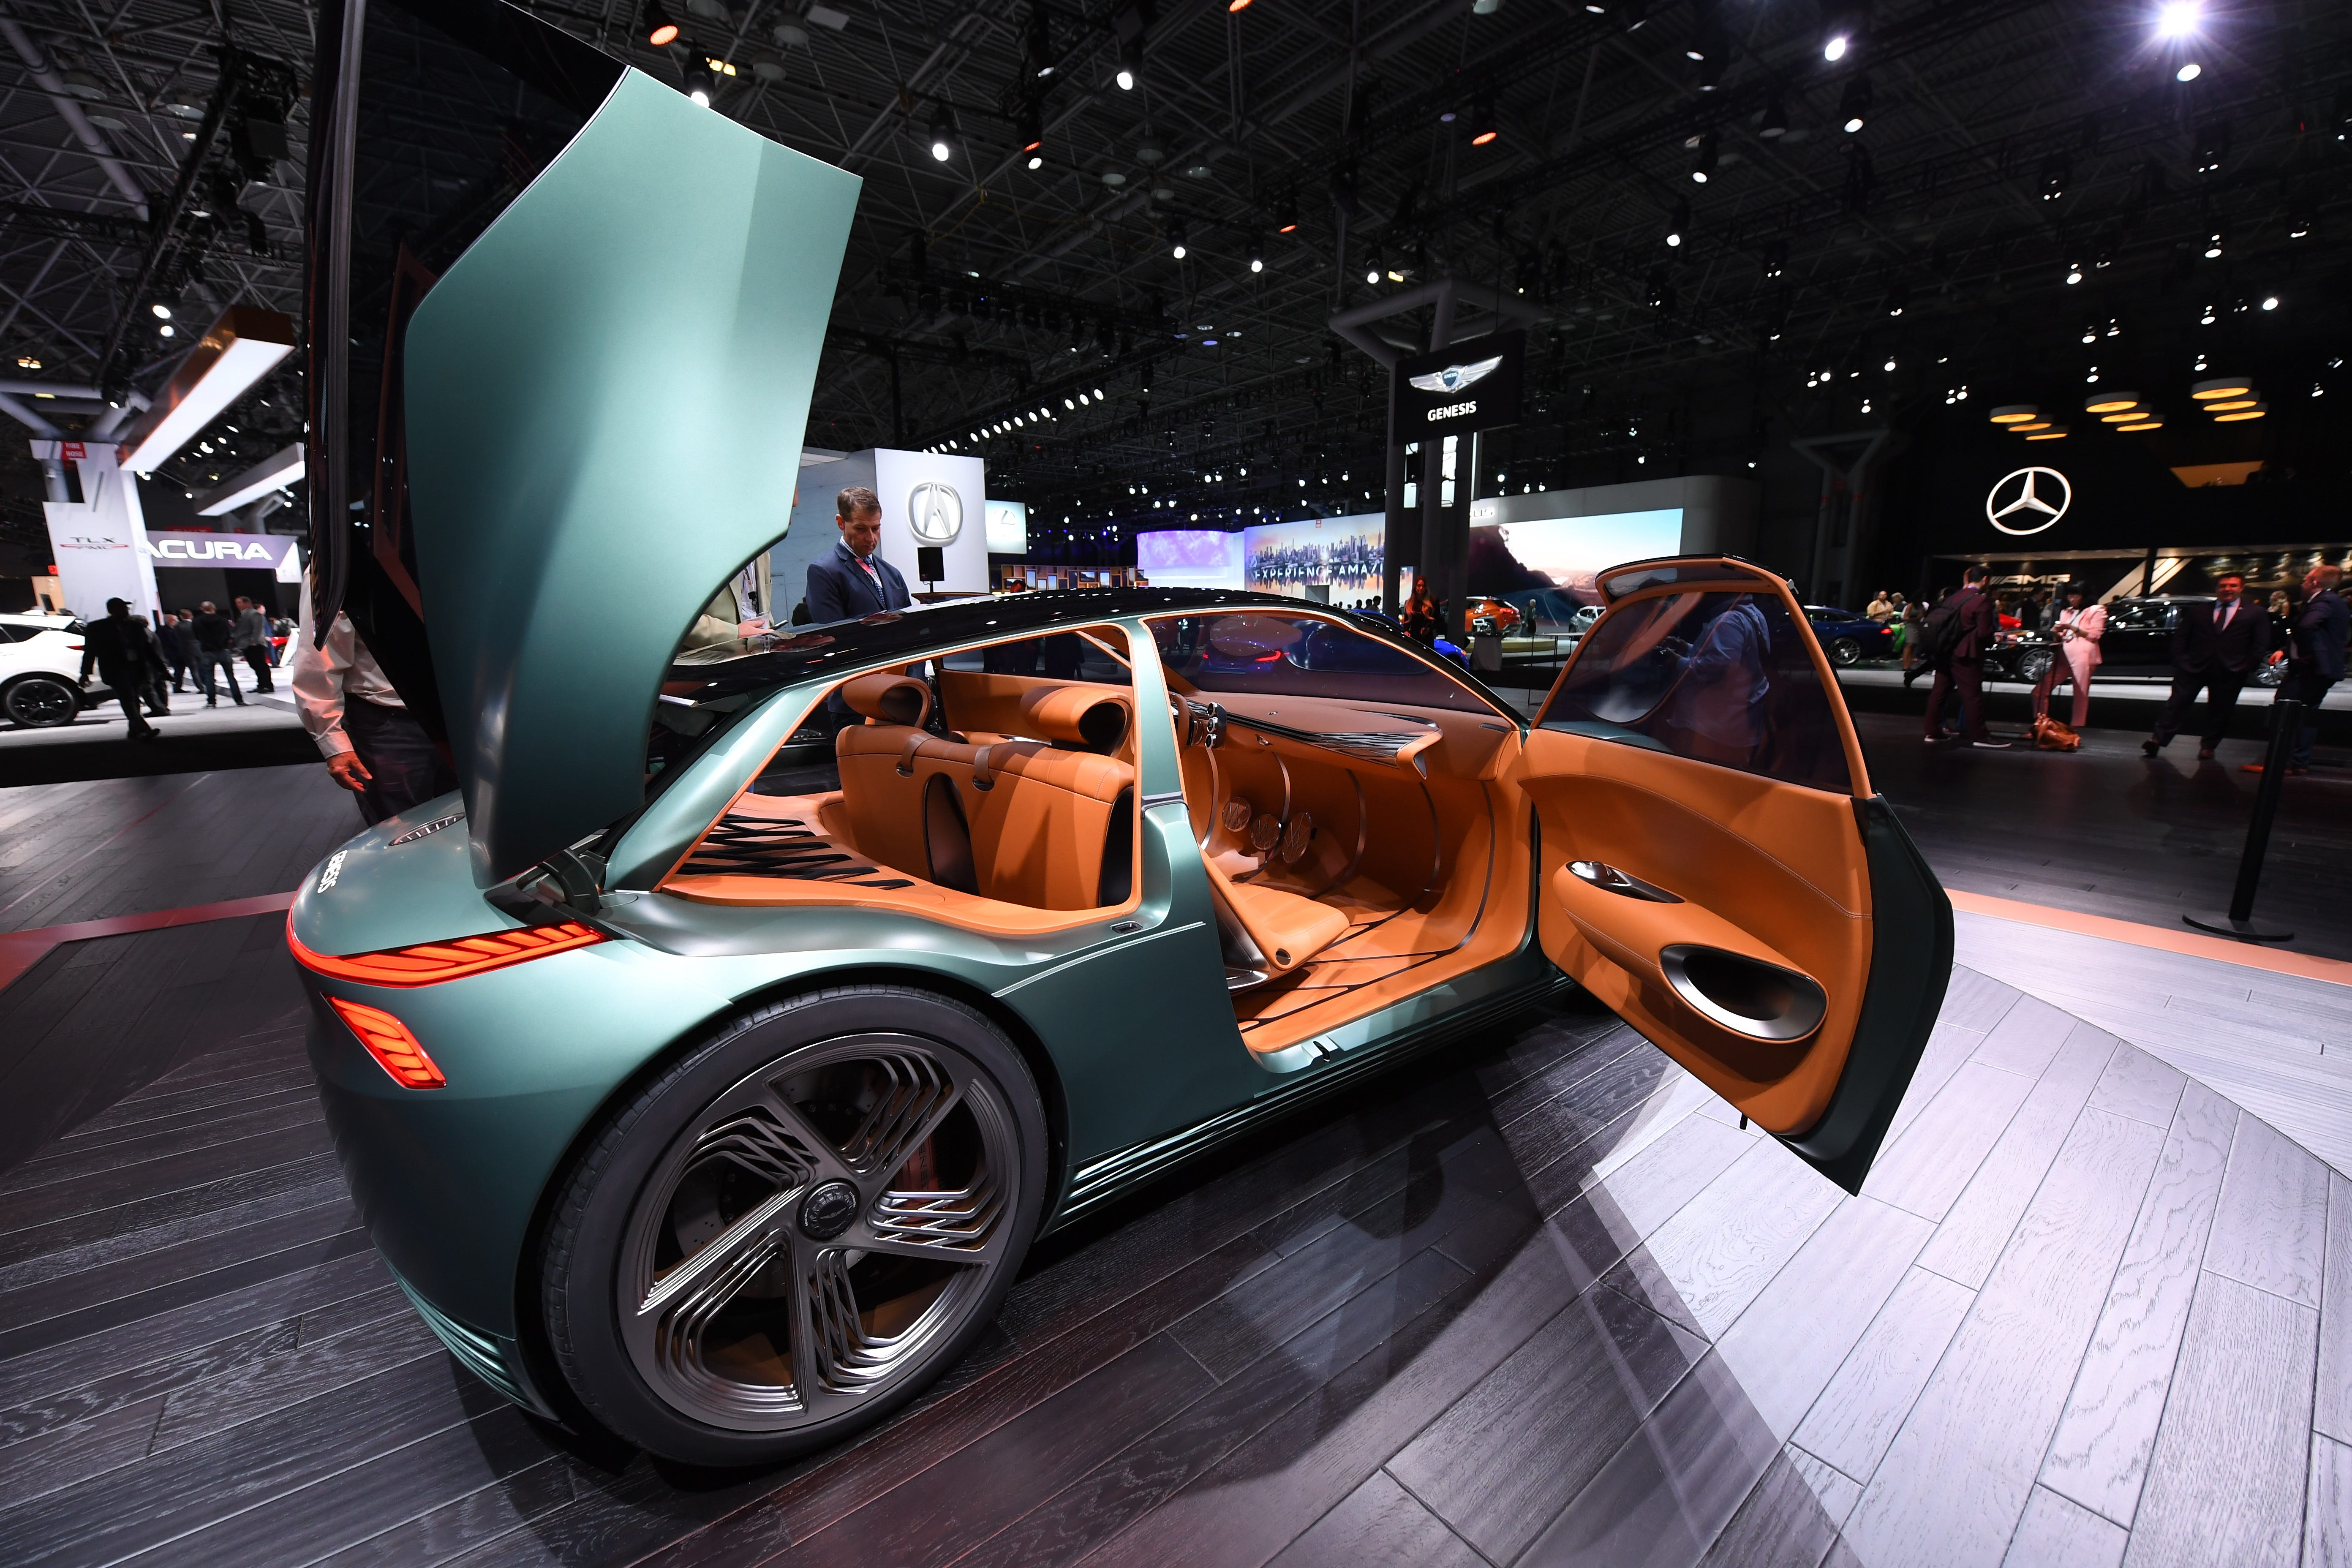 Genesis Mint on display at the New York International Auto Show.